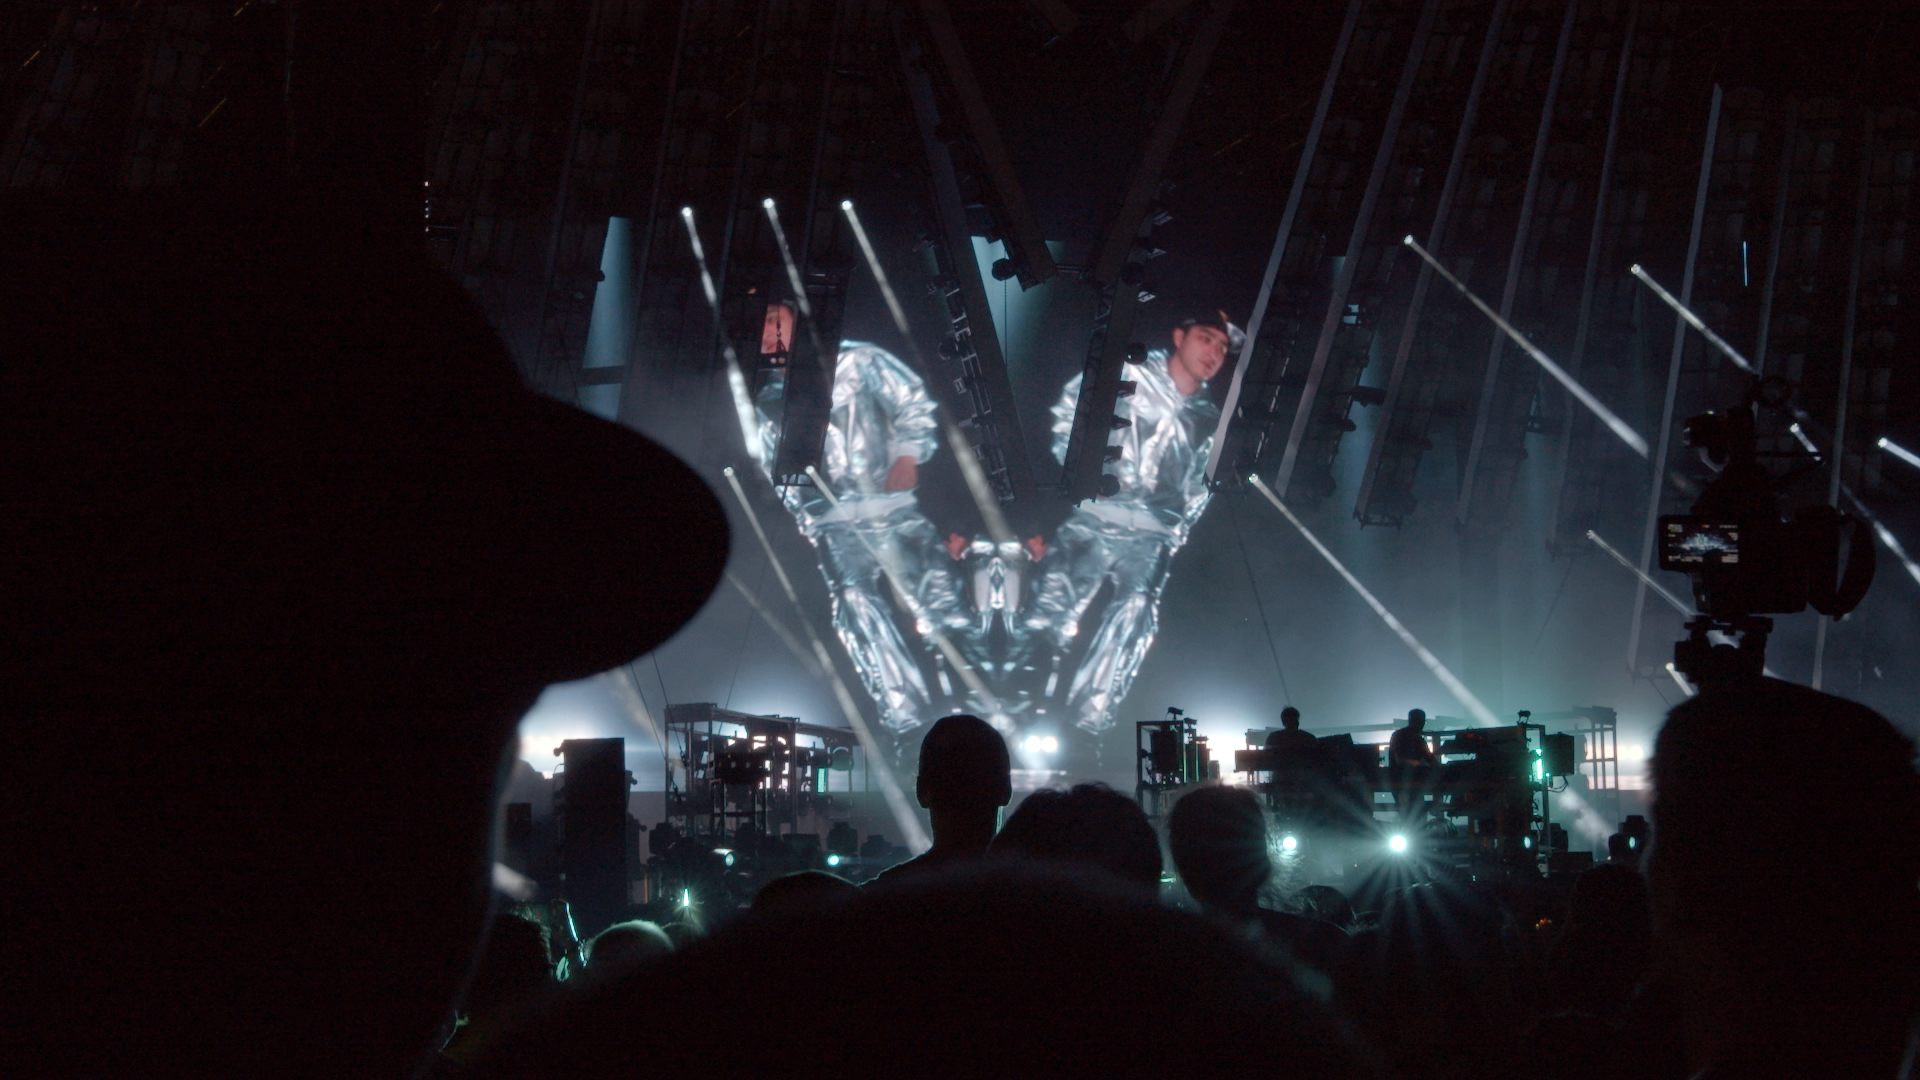 The Chemical Brothers bring Hollywood special effects to dance music